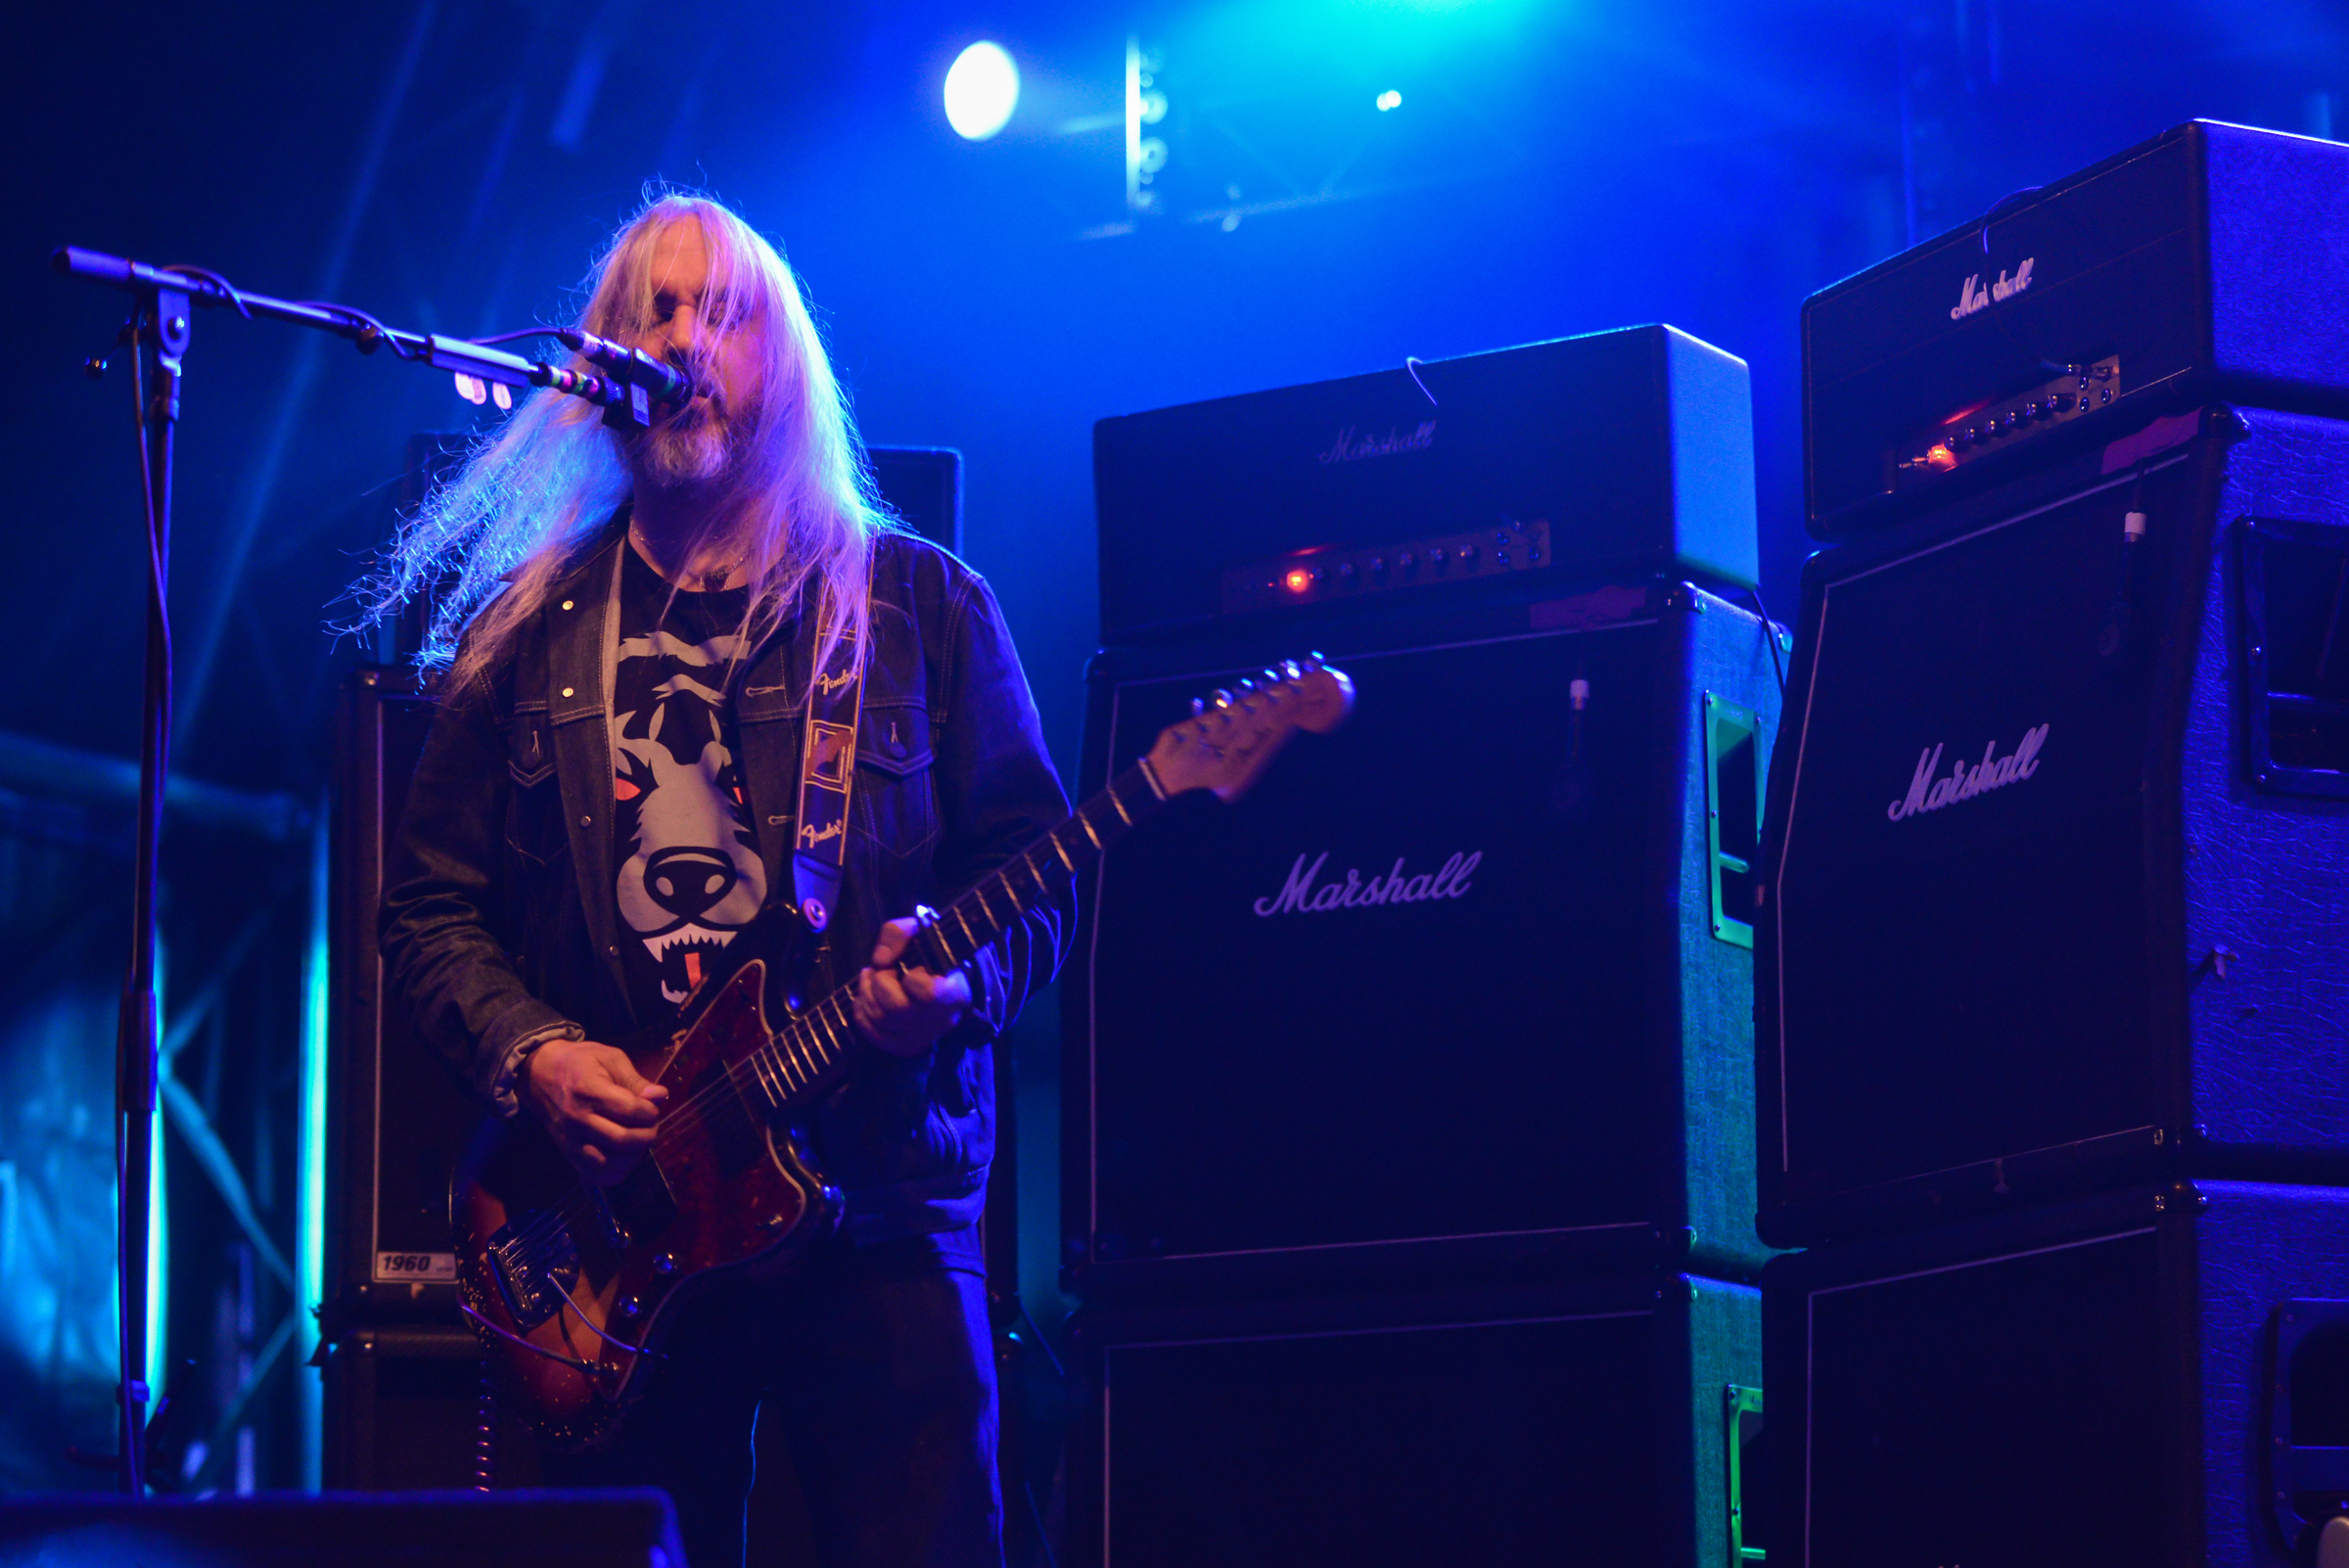 SALISBURY, ENGLAND - SEPTEMBER 01:  J Mascis of the band Dinosaur Jr. performs on stage on Day 3 of End Of The Road Festival